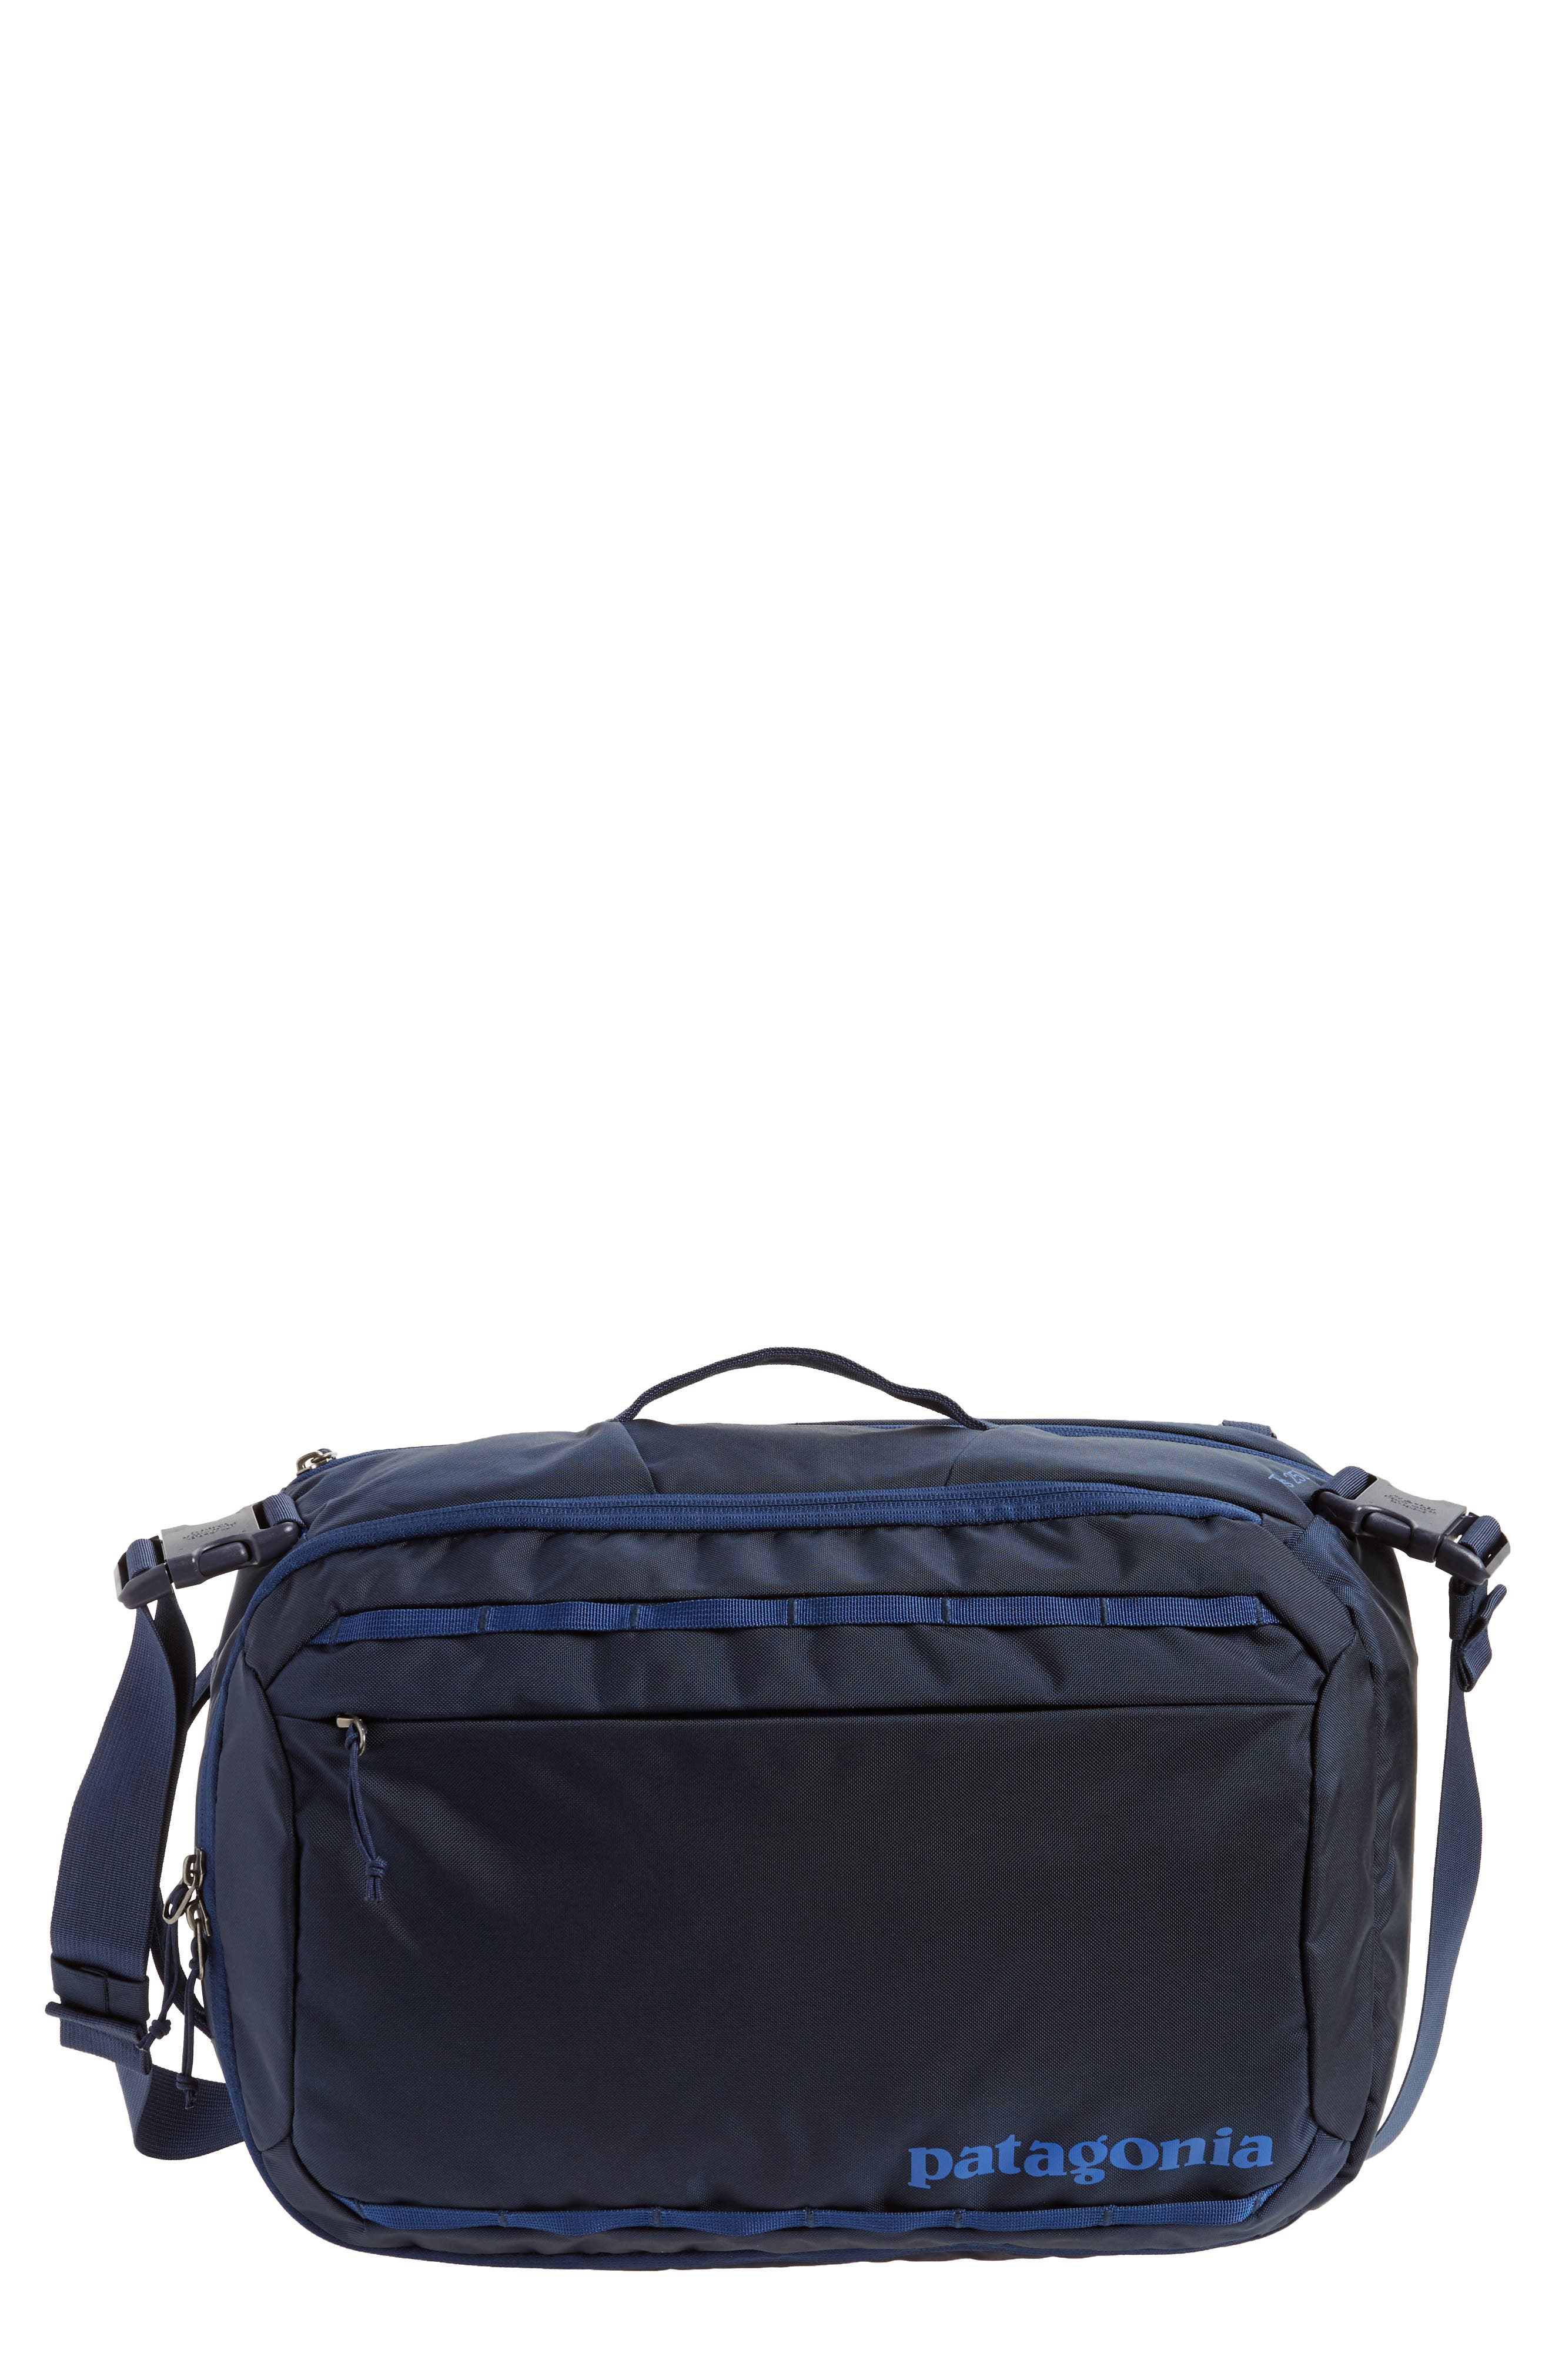 Patagonia Tres 25-Liter Convertible Backpack